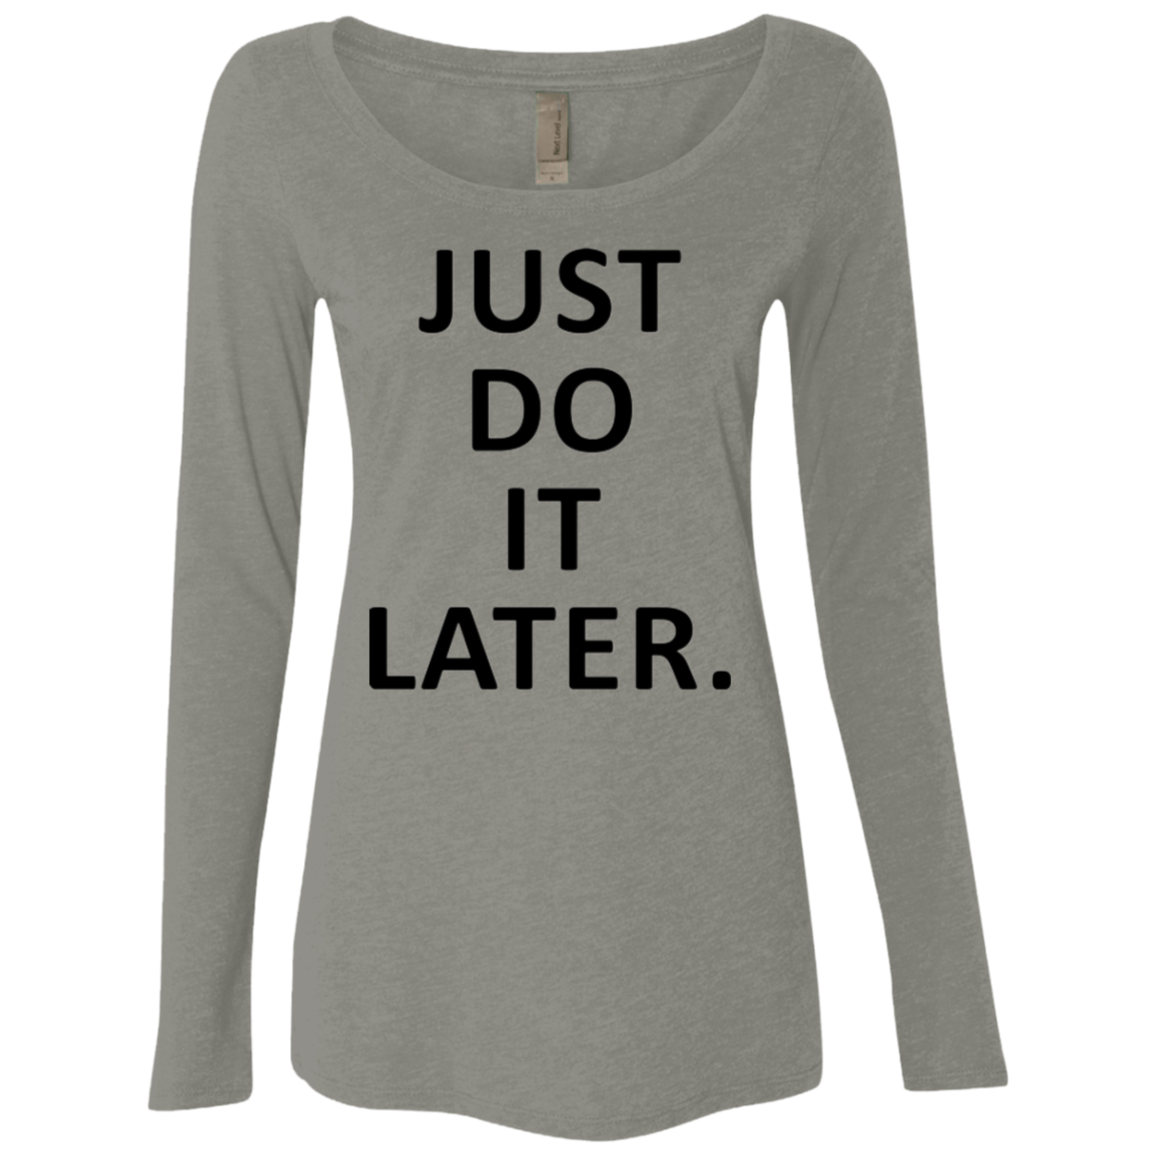 Just Do it Later Women's Long Sleeve Tee - Trendy Tees